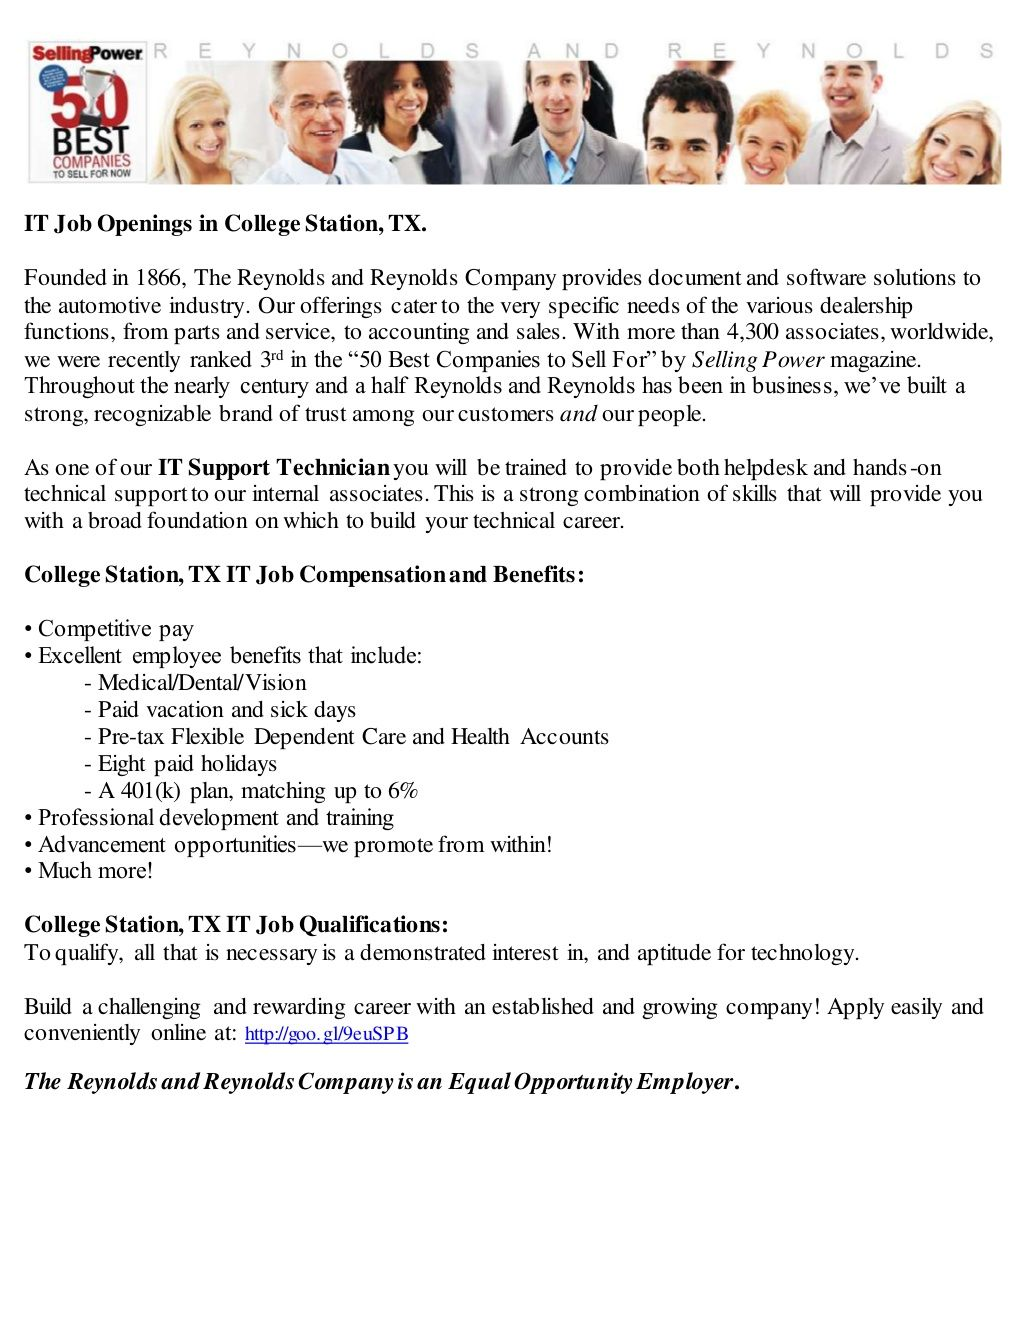 It jobs in college station tx customer service jobs